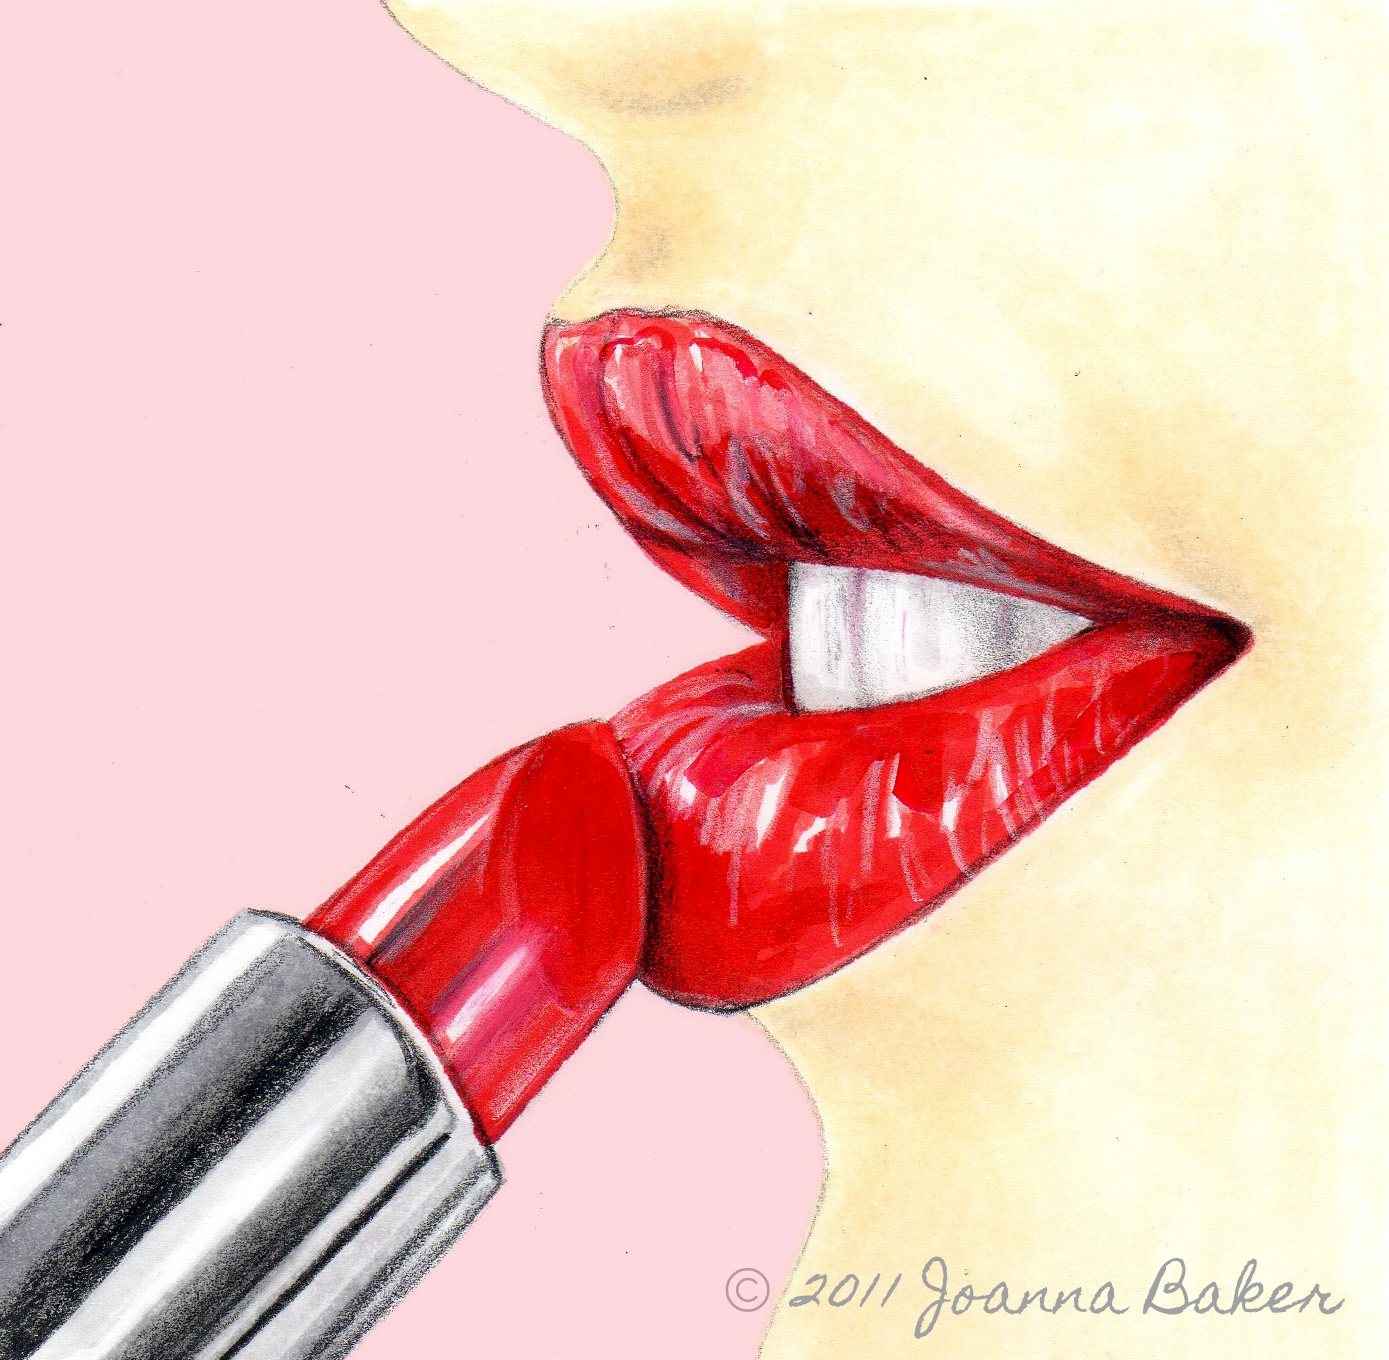 How To Draw Lips With Lipstick